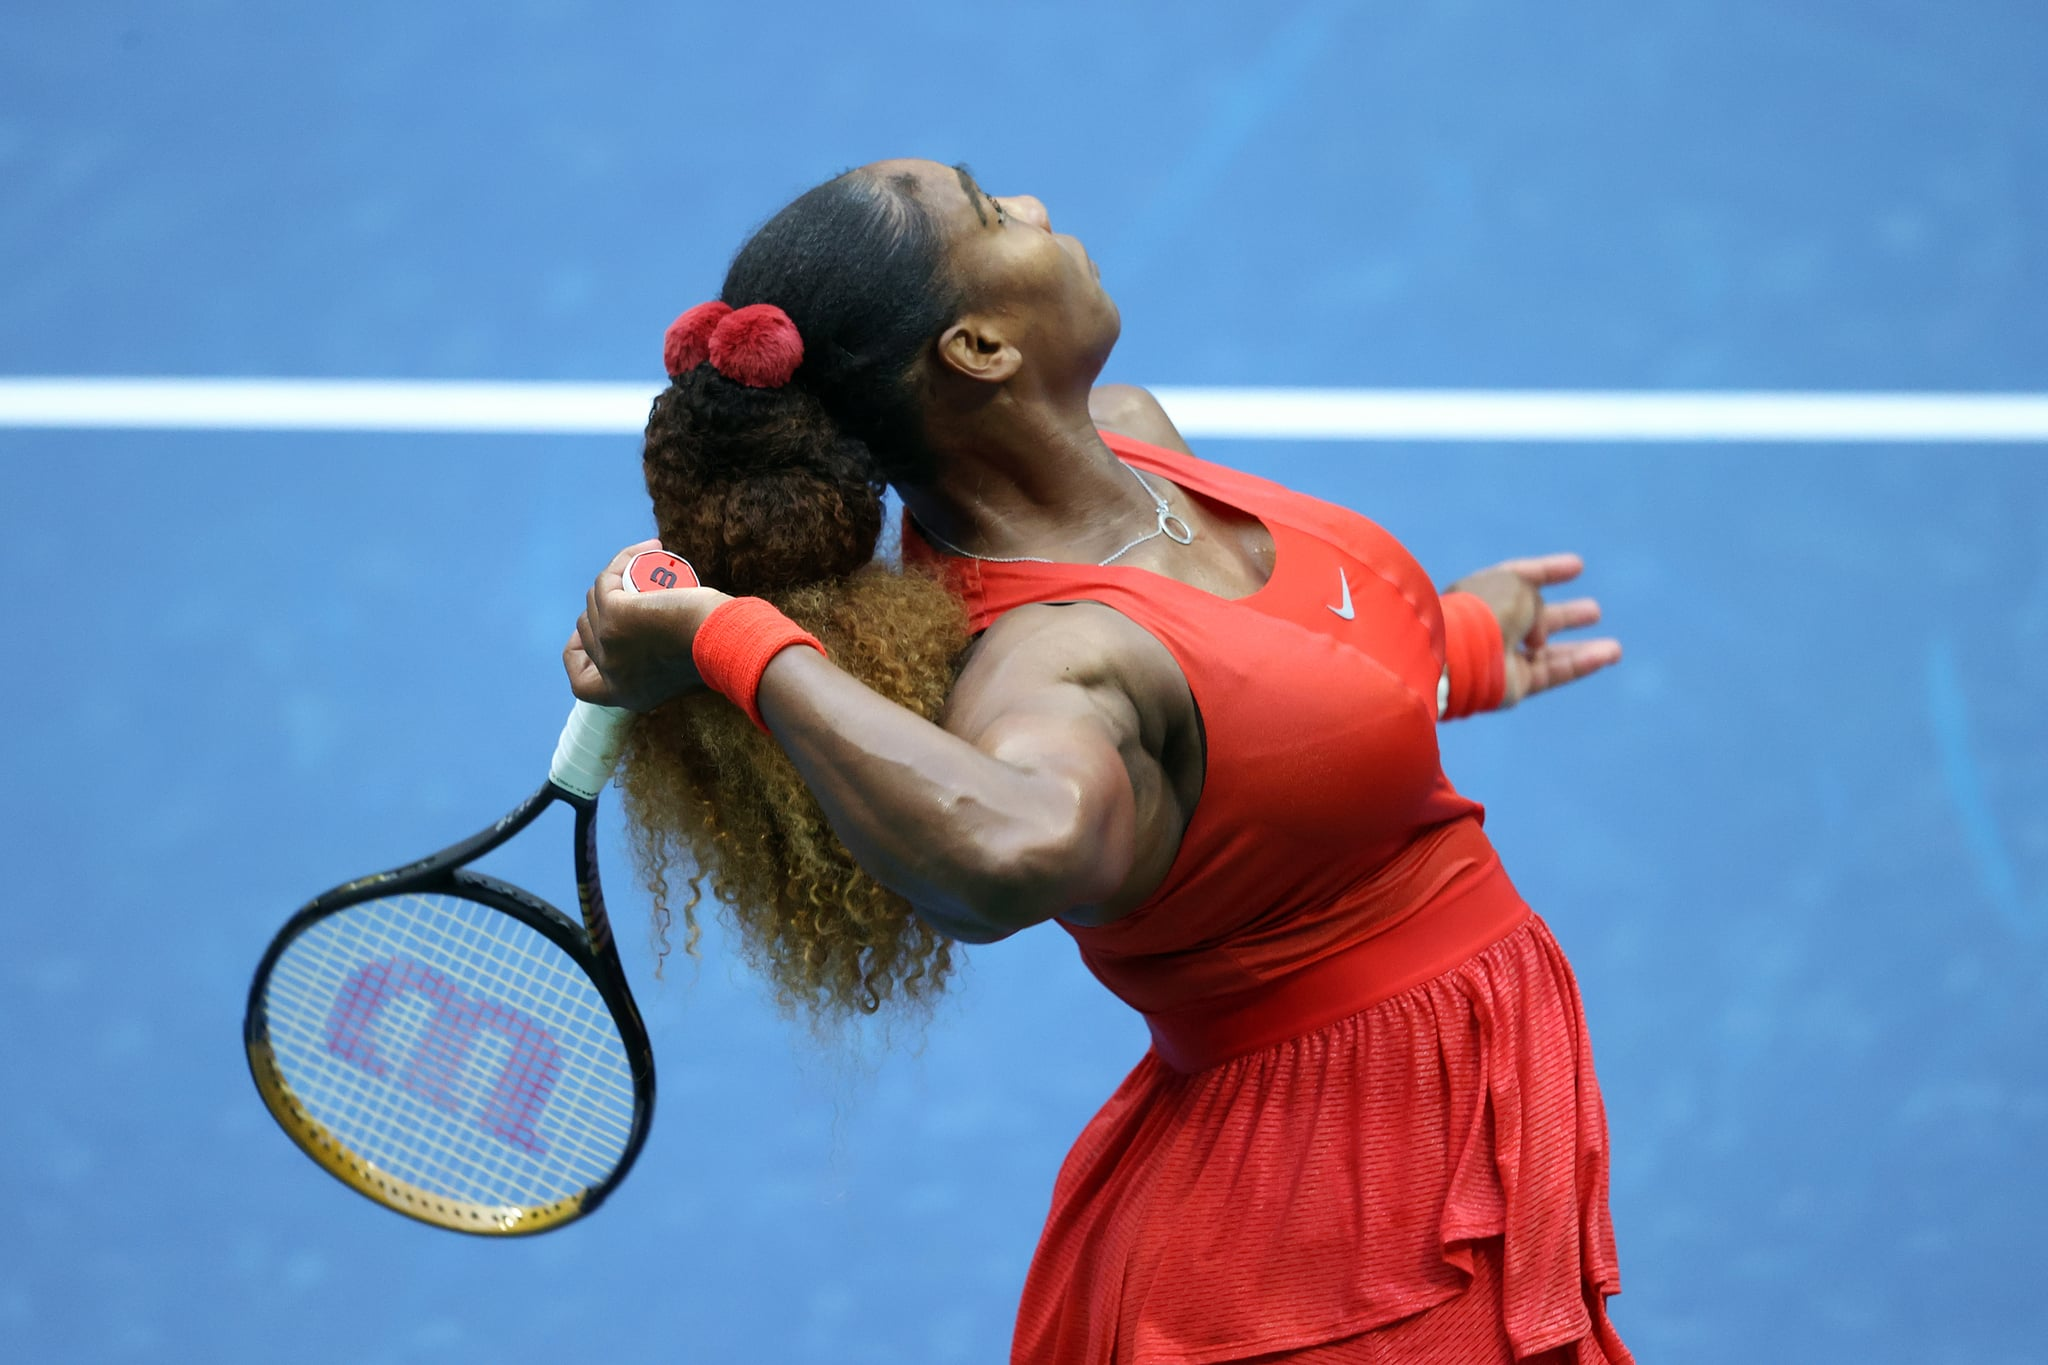 NEW YORK, NEW YORK - SEPTEMBER 01: Serena Williams of the United States serves the ball during her Women's Singles first round match against Kristie Ahn of the United States on Day Two of the 2020 US Open at the USTA Billie Jean King National Tennis Centre on September 1, 2020 in the Queens borough of New York City. (Photo by Al Bello/Getty Images)